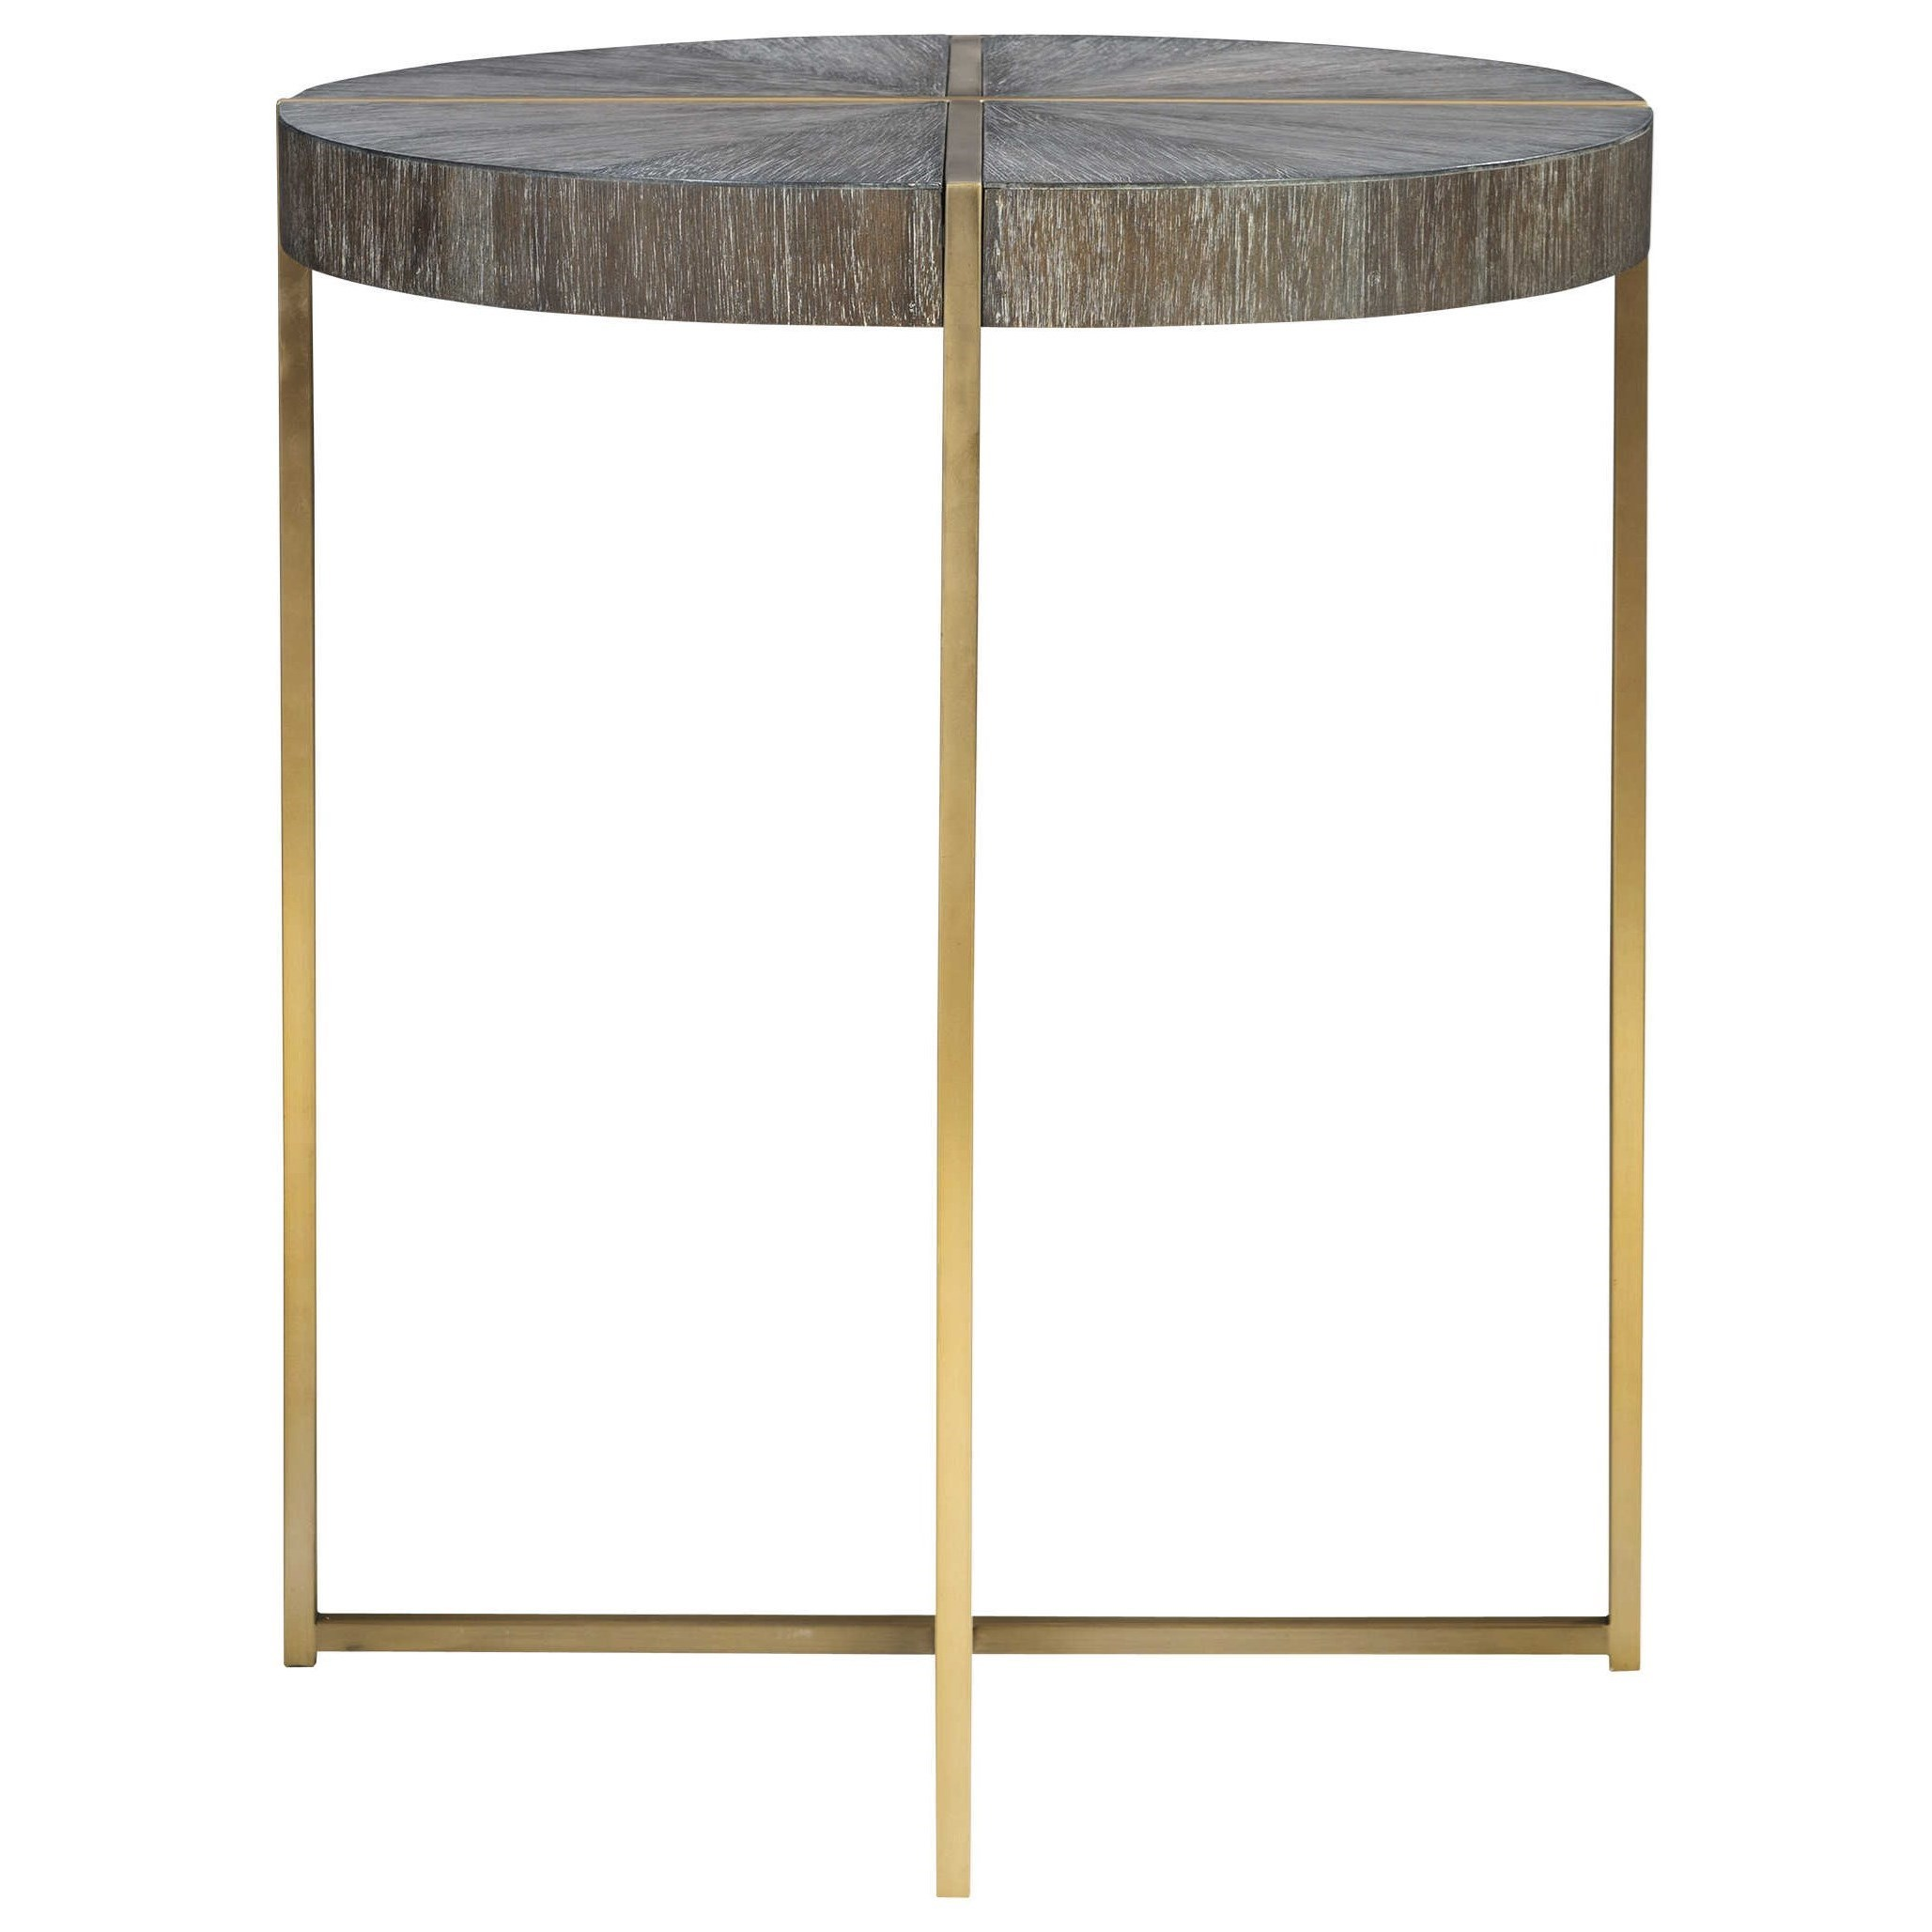 Accent Furniture - Occasional Tables Taja Round Accent Table by Uttermost at Upper Room Home Furnishings